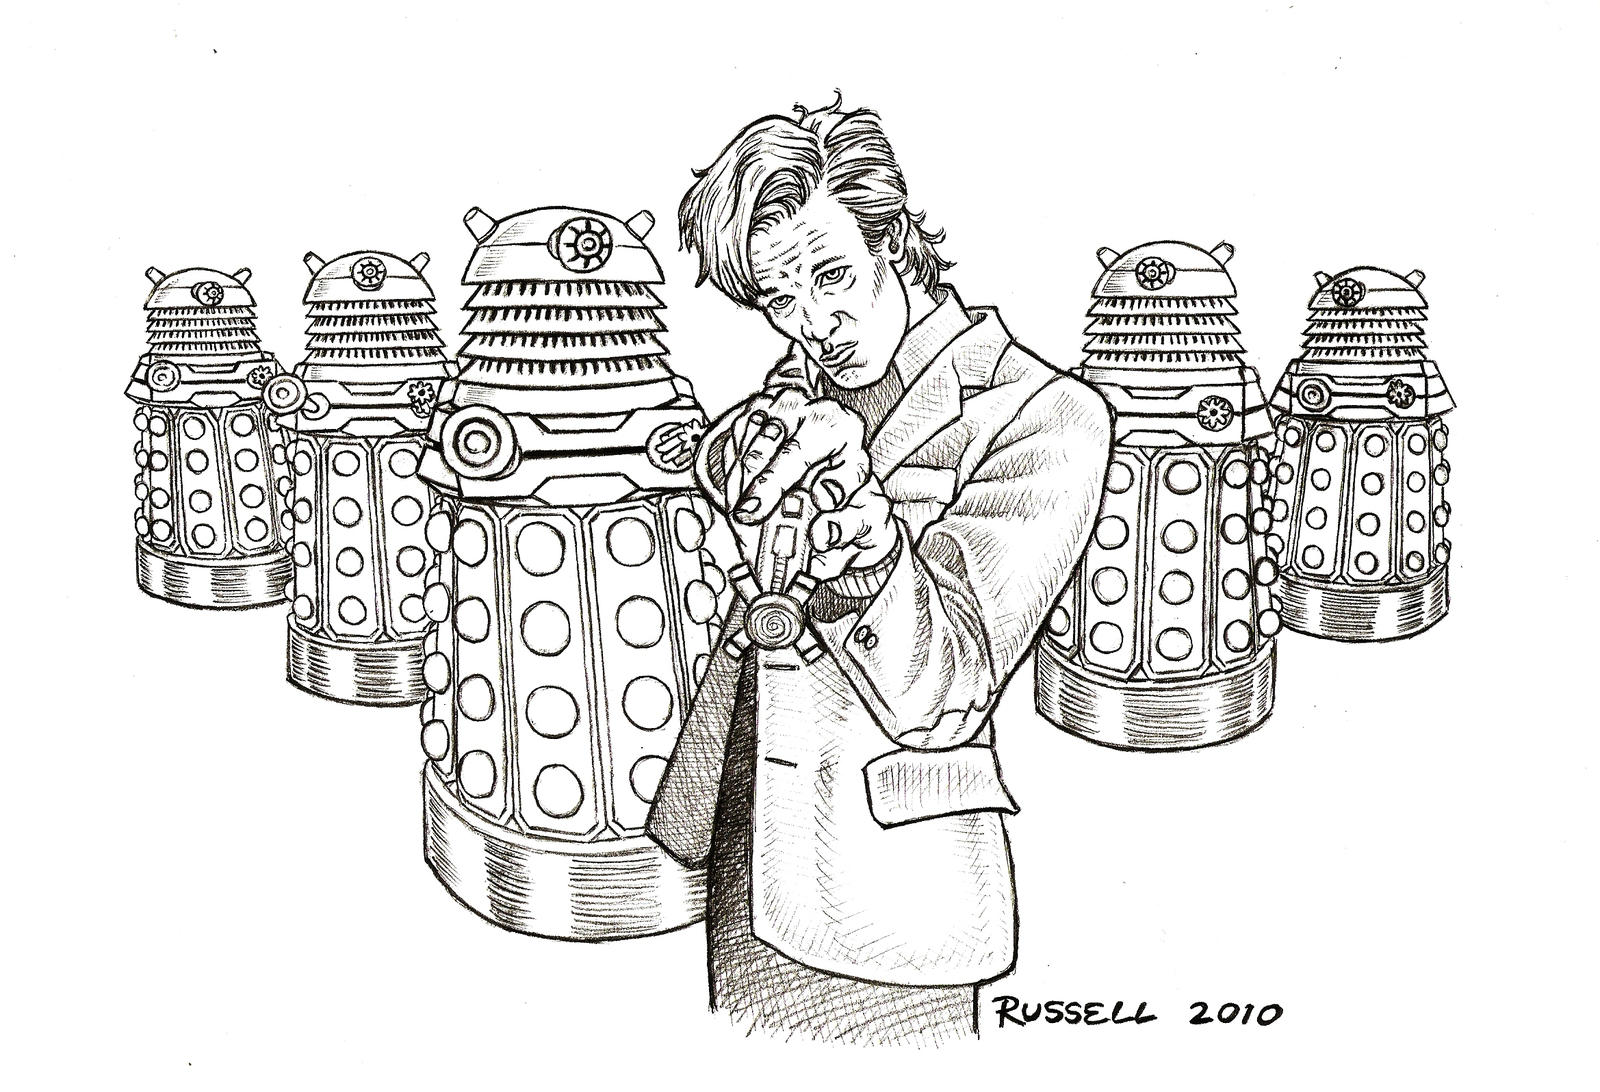 Doctor who vs the daleks by bungle0 on deviantart for Dr who coloring pages